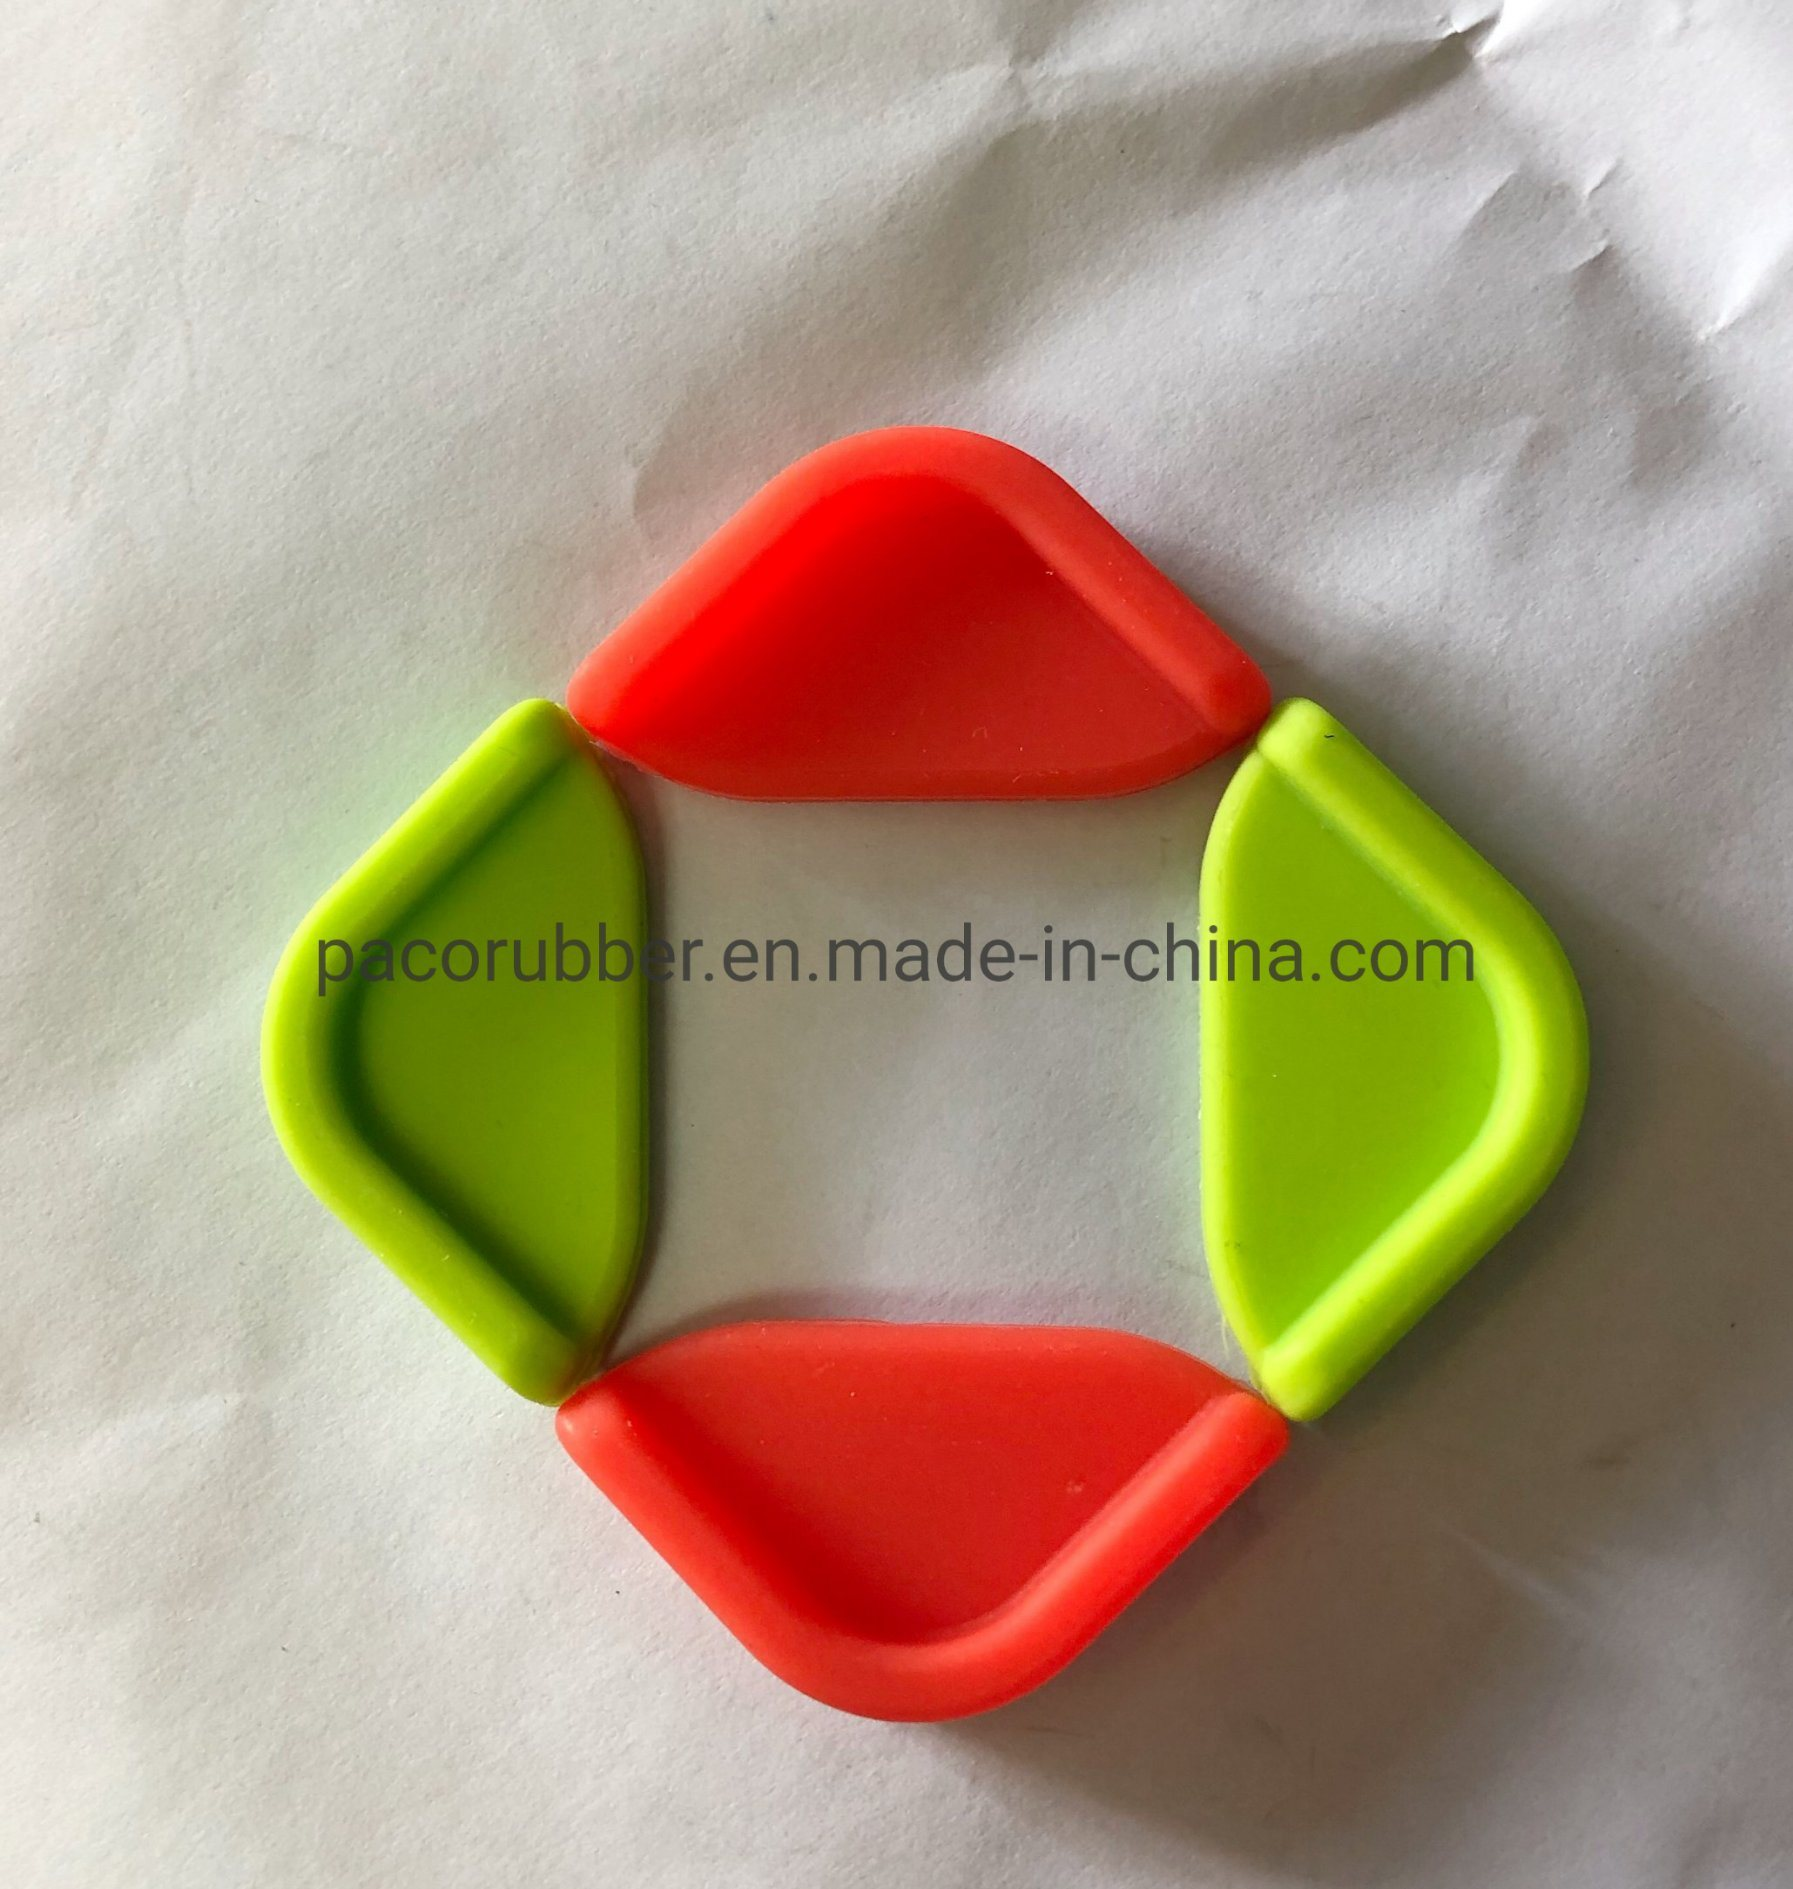 China Silicone Rubber Corner Guard Cover For Glass Table Photos